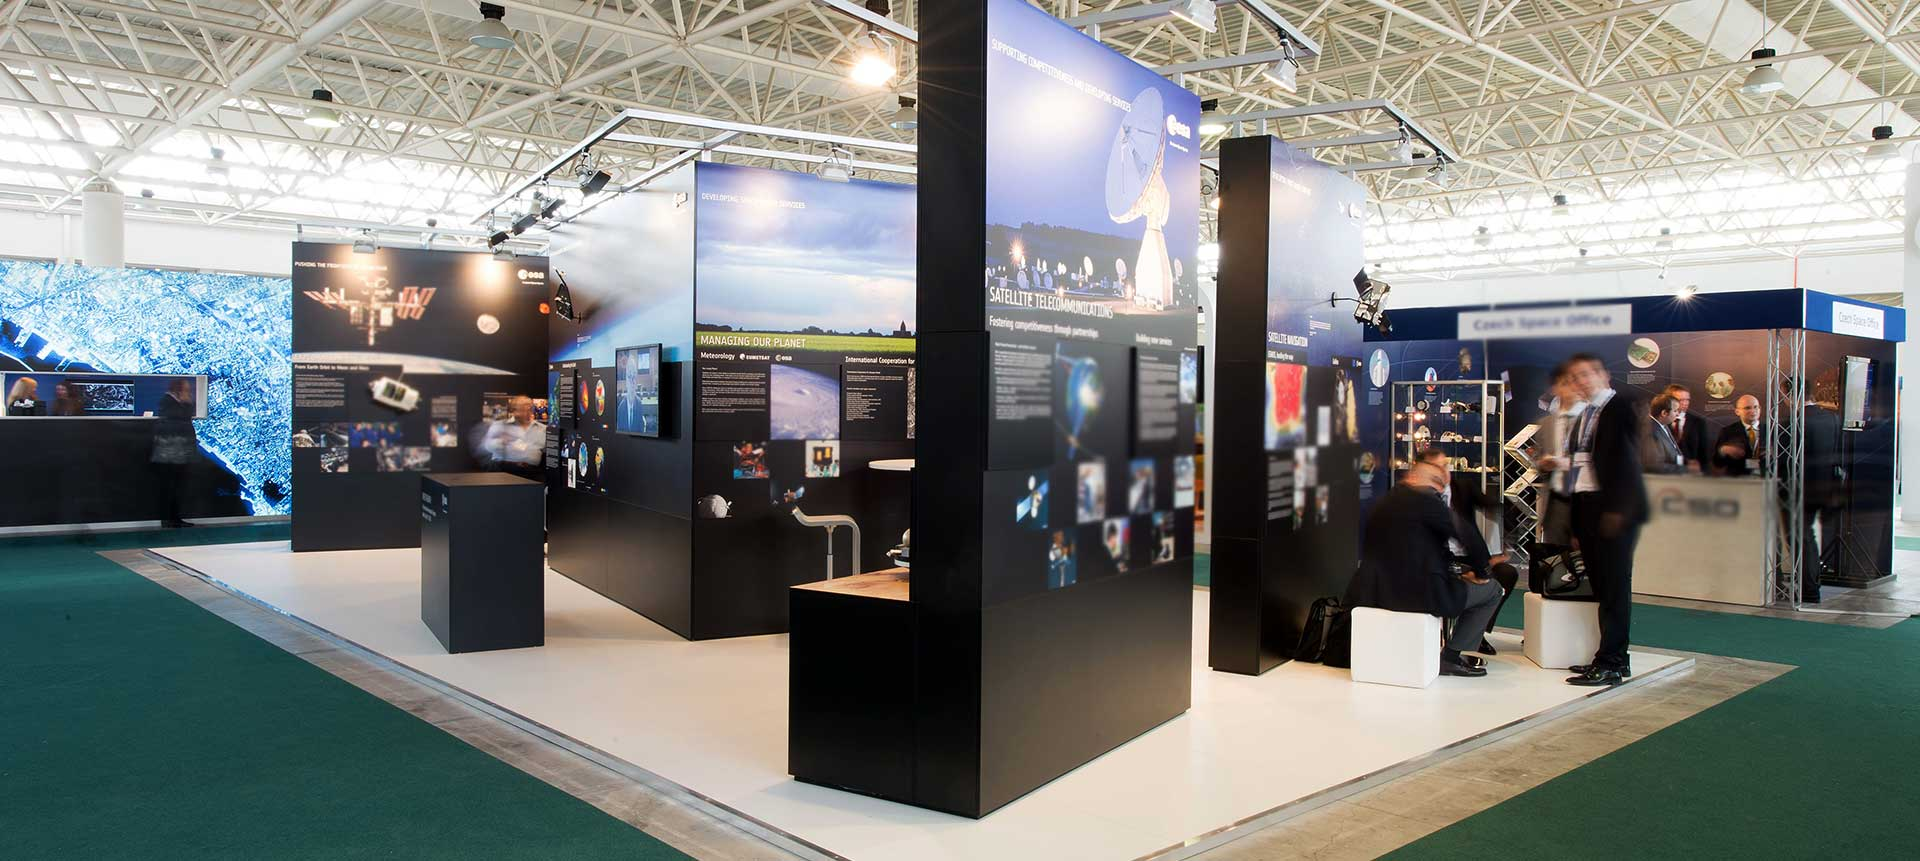 We are Exhibition Management Specialists